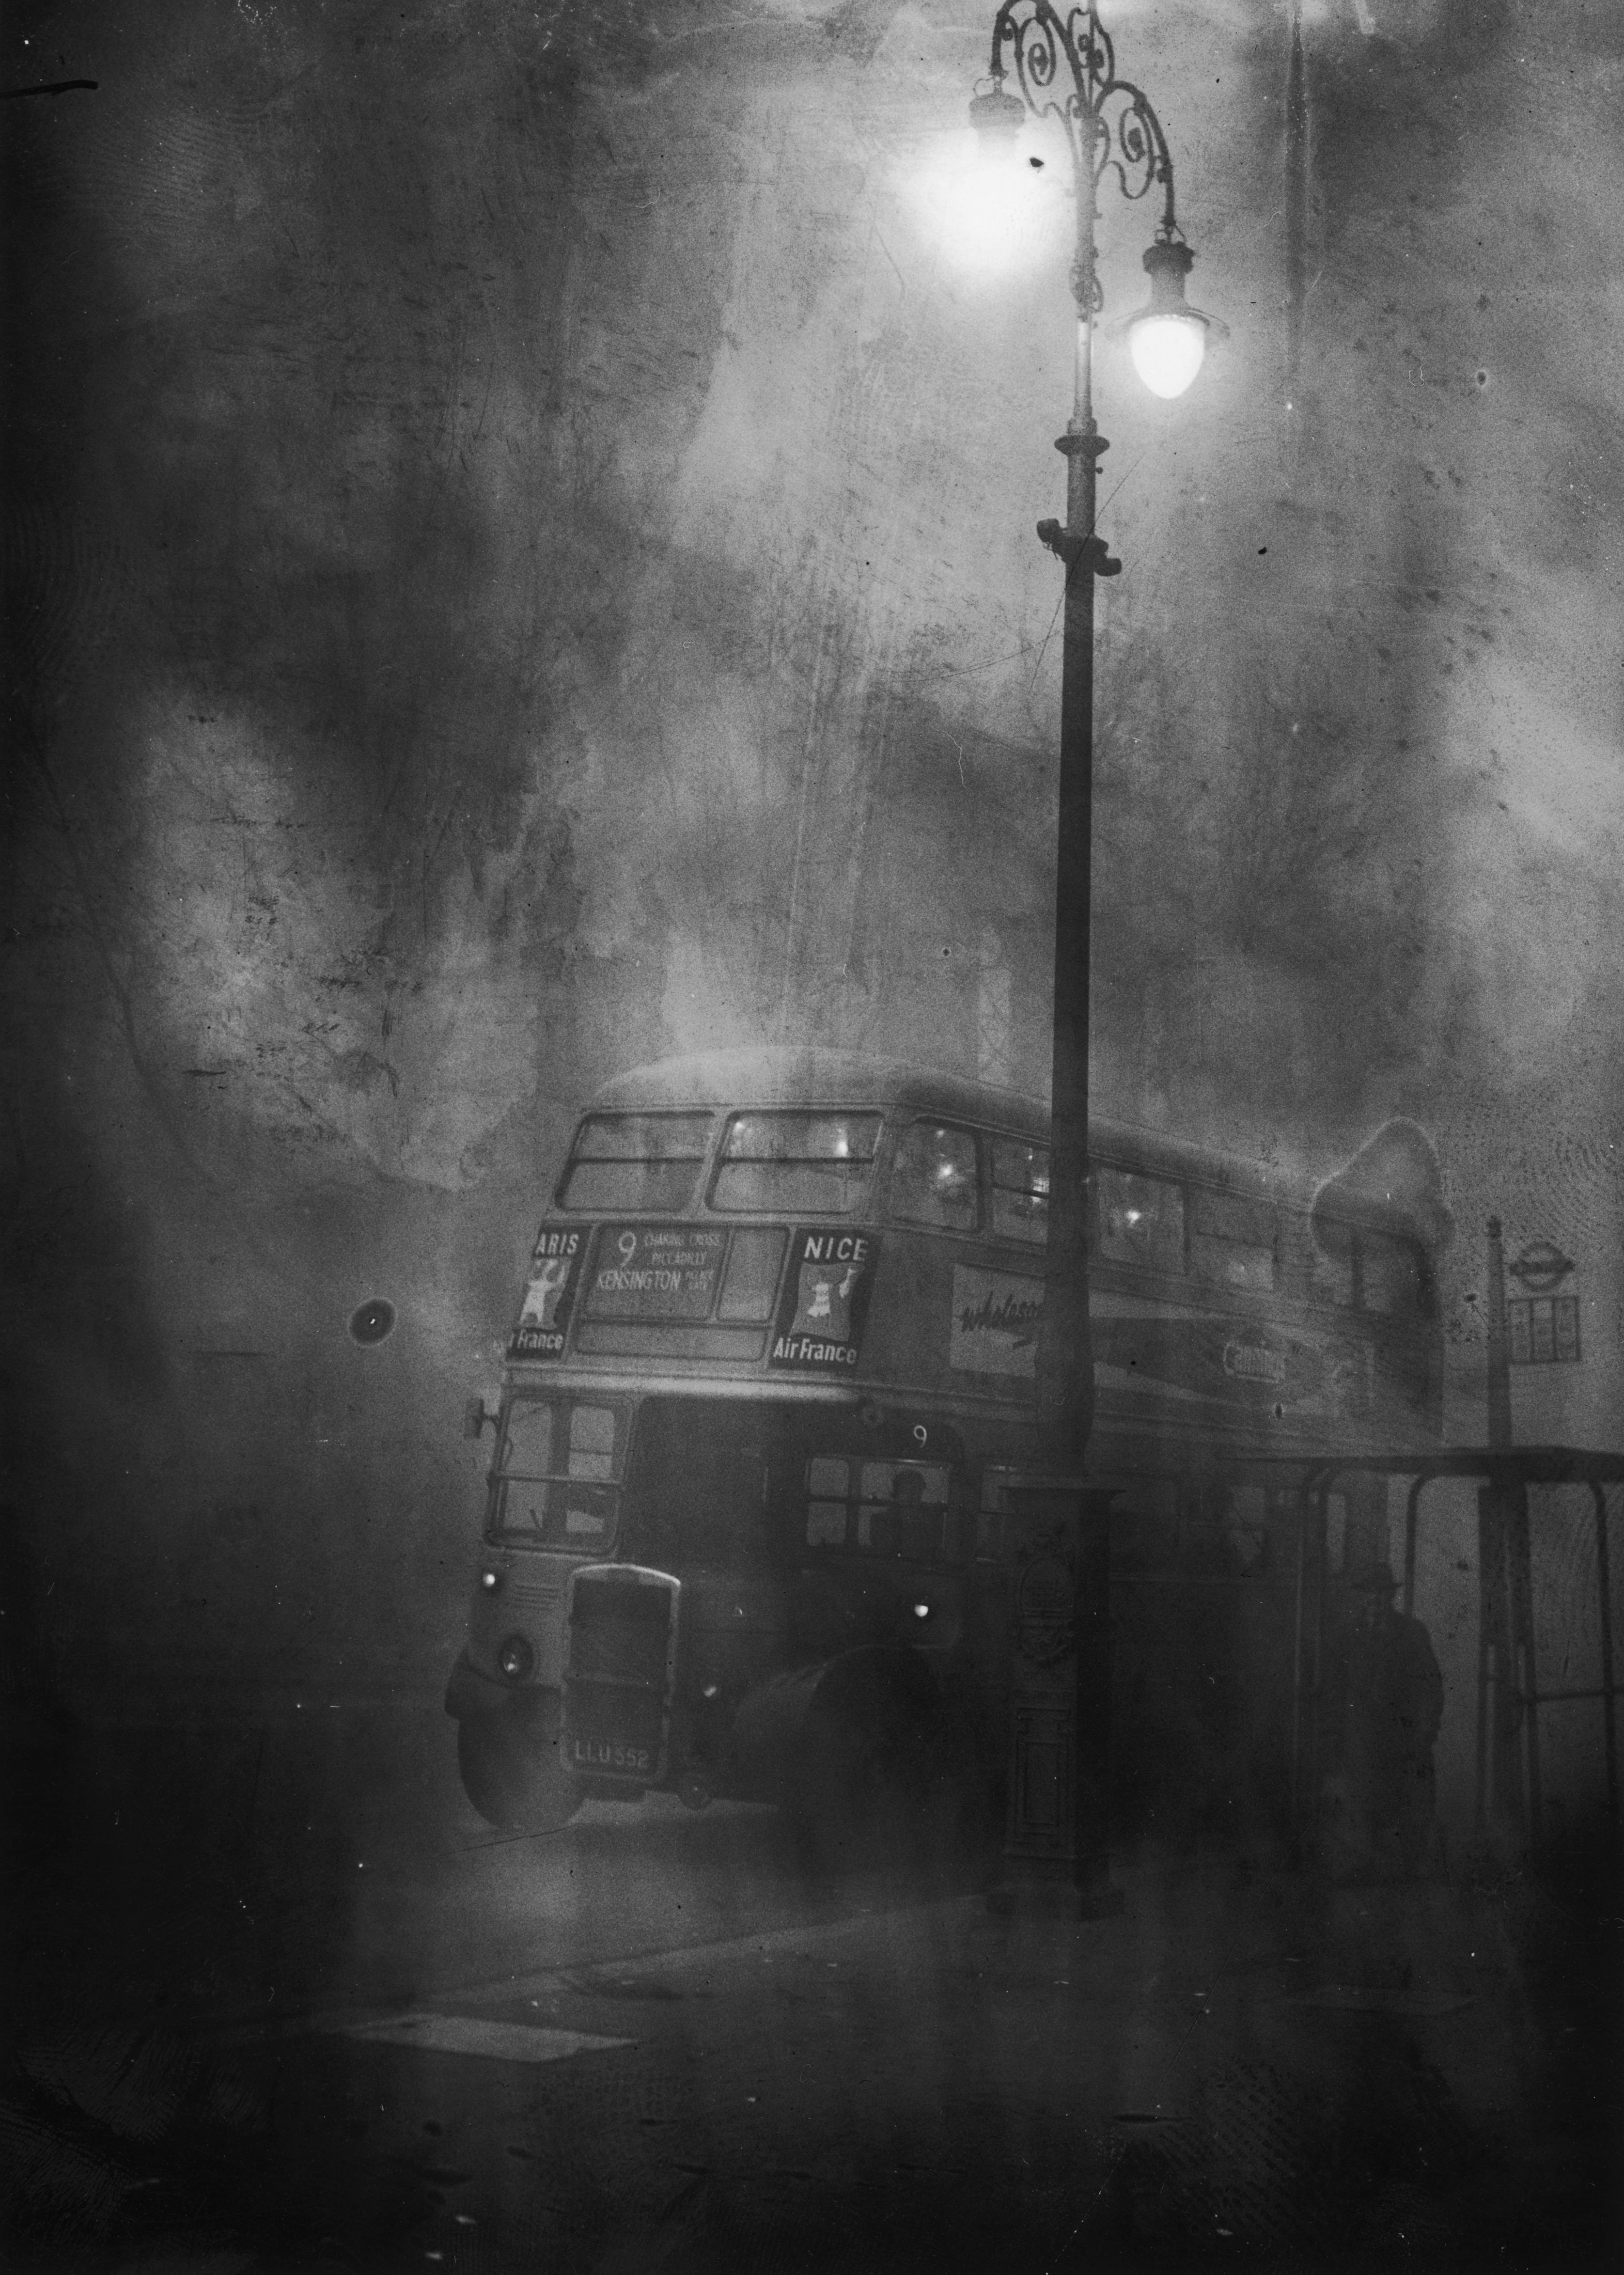 A London bus makes its way along Fleet Street in heavy smog, 6th December 1952. (Photo by Edward Miller/Keystone/Hulton Archive/Getty Images)